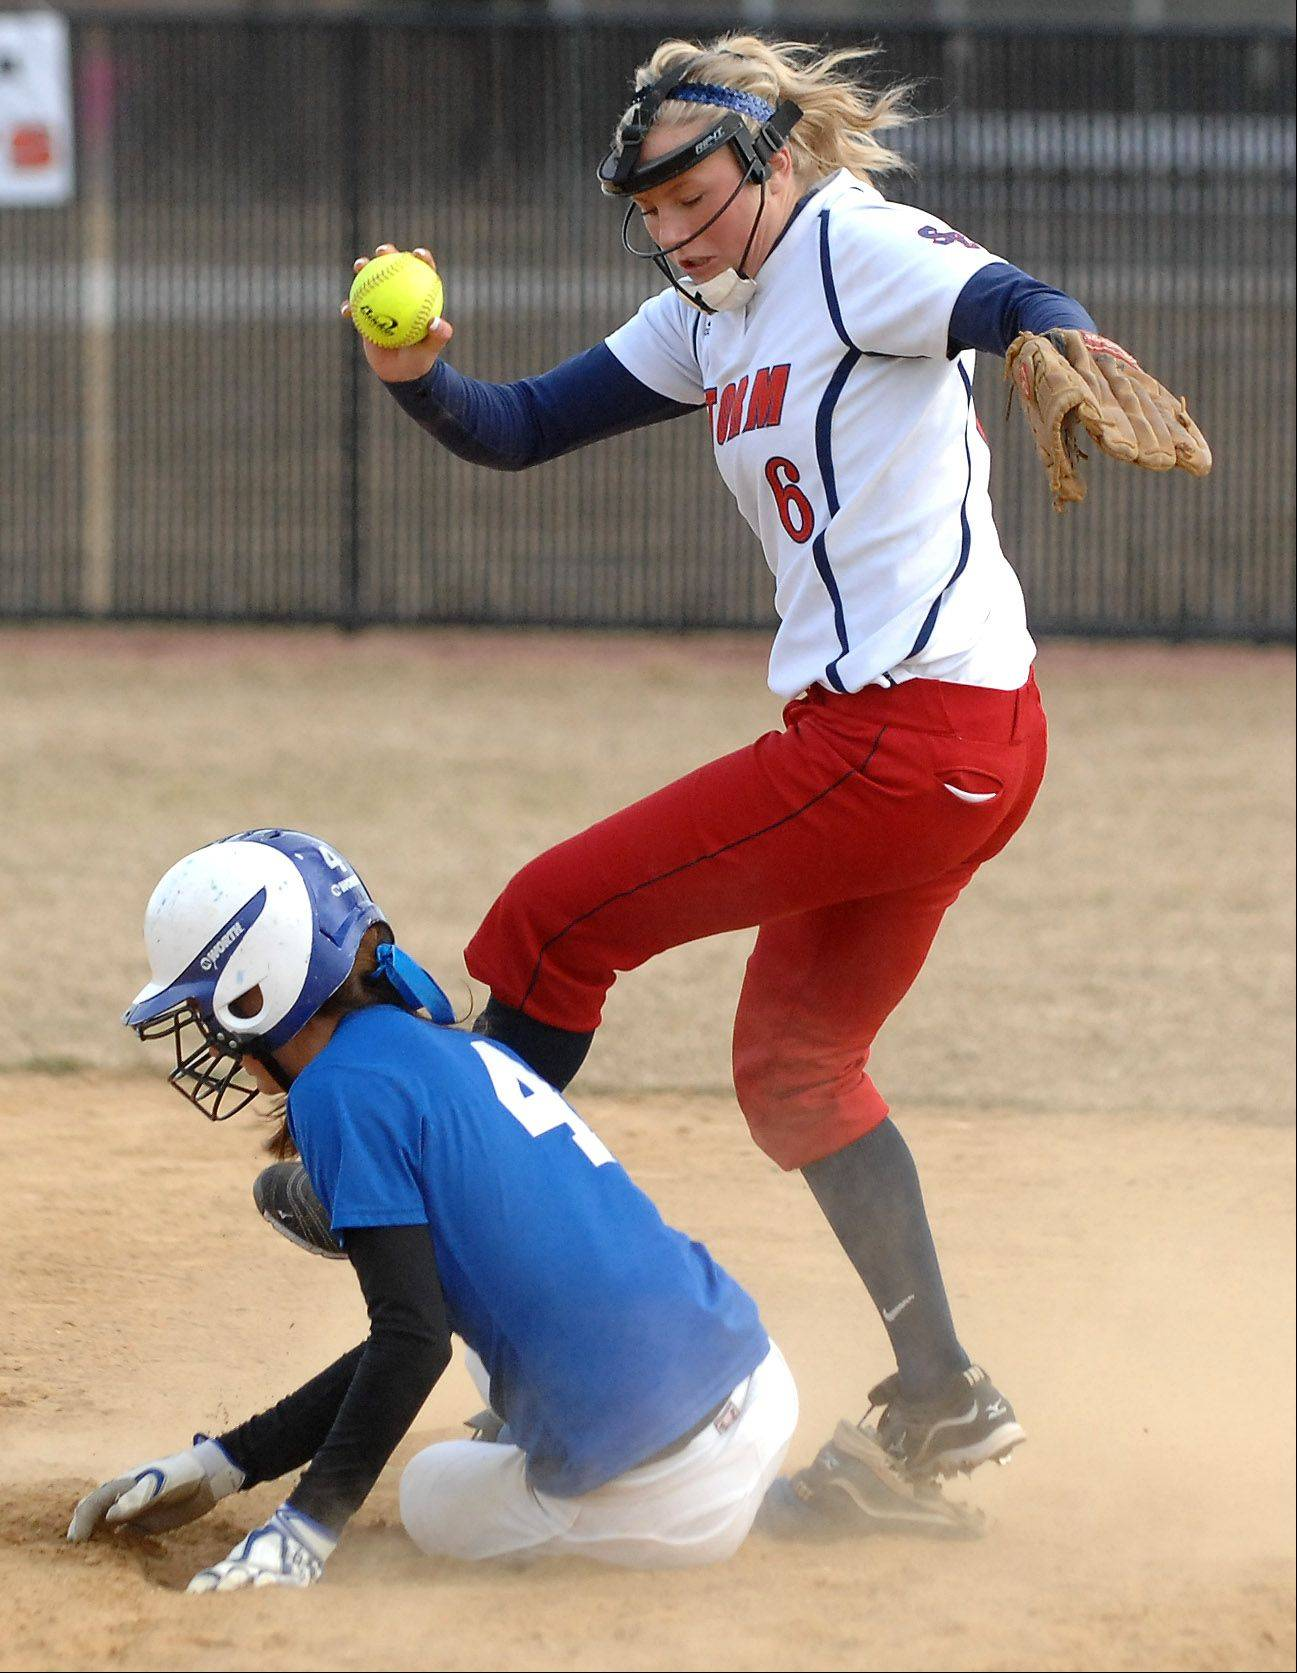 St. Charles North's Kaitlyn Waslawski bears down and breaks up a chance for a double play by South Elgin's Kara Rodriguez during Friday's game in St. Charles.